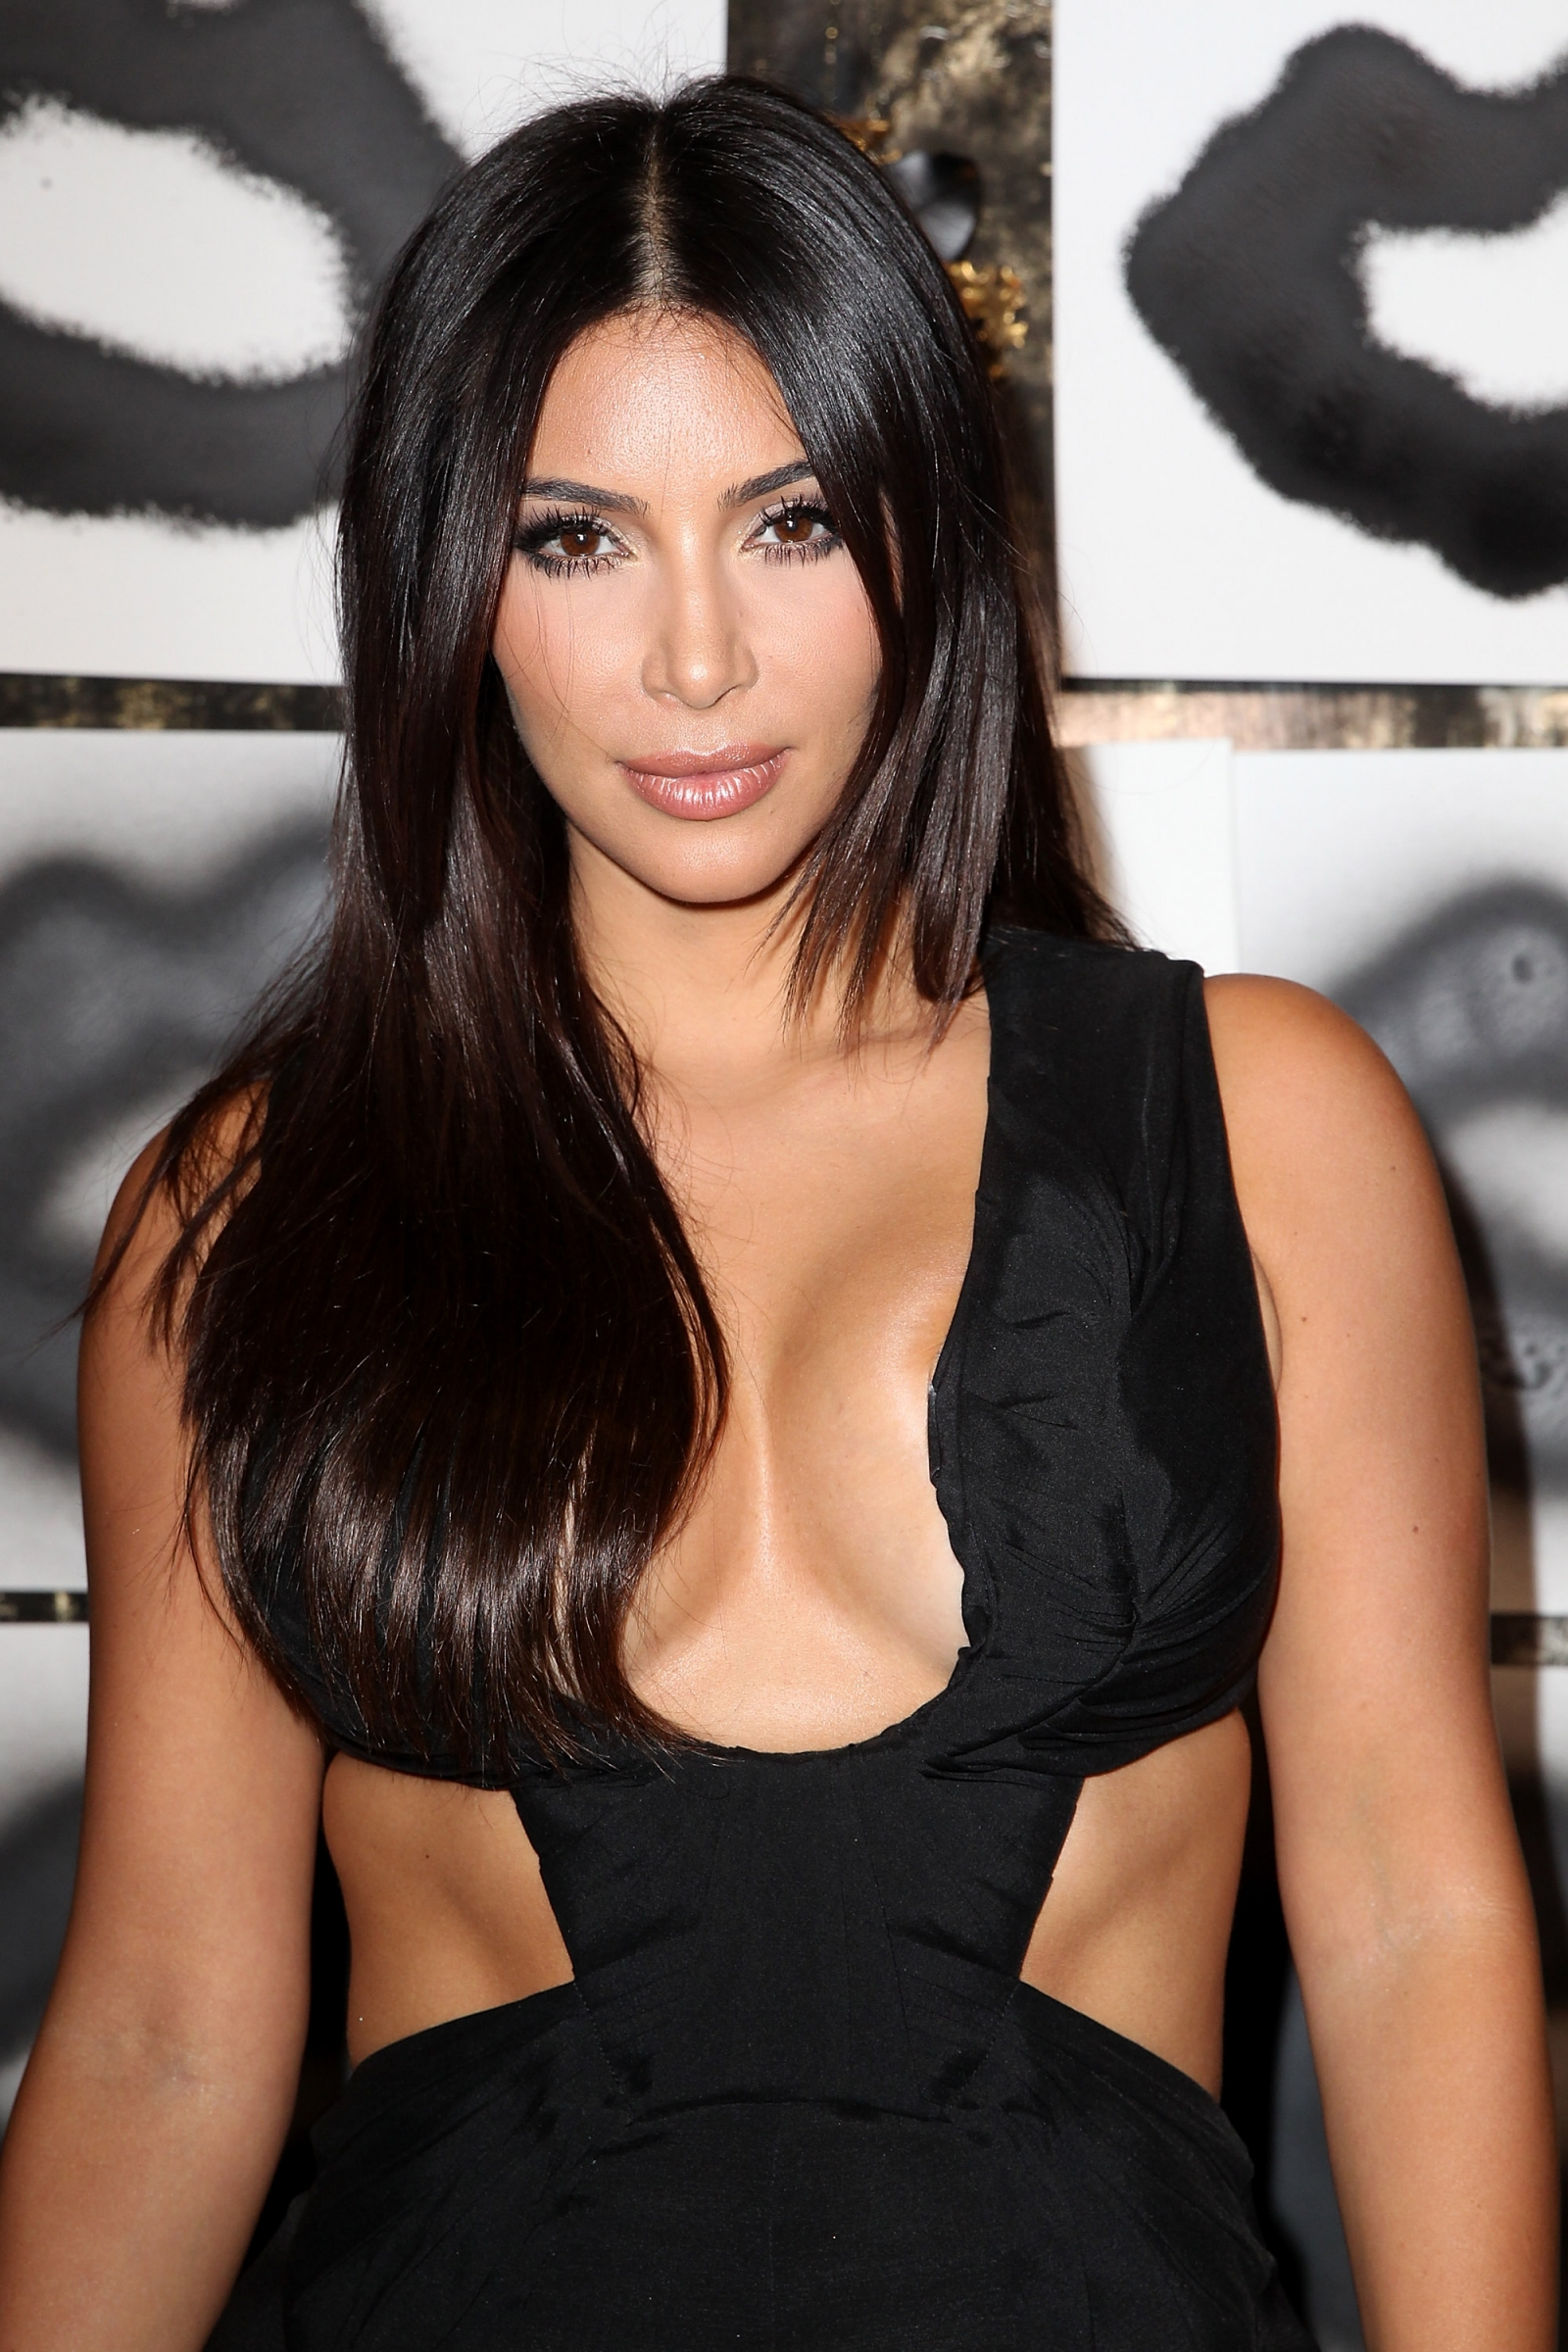 kim kardashian offered 1 million for one evening as a